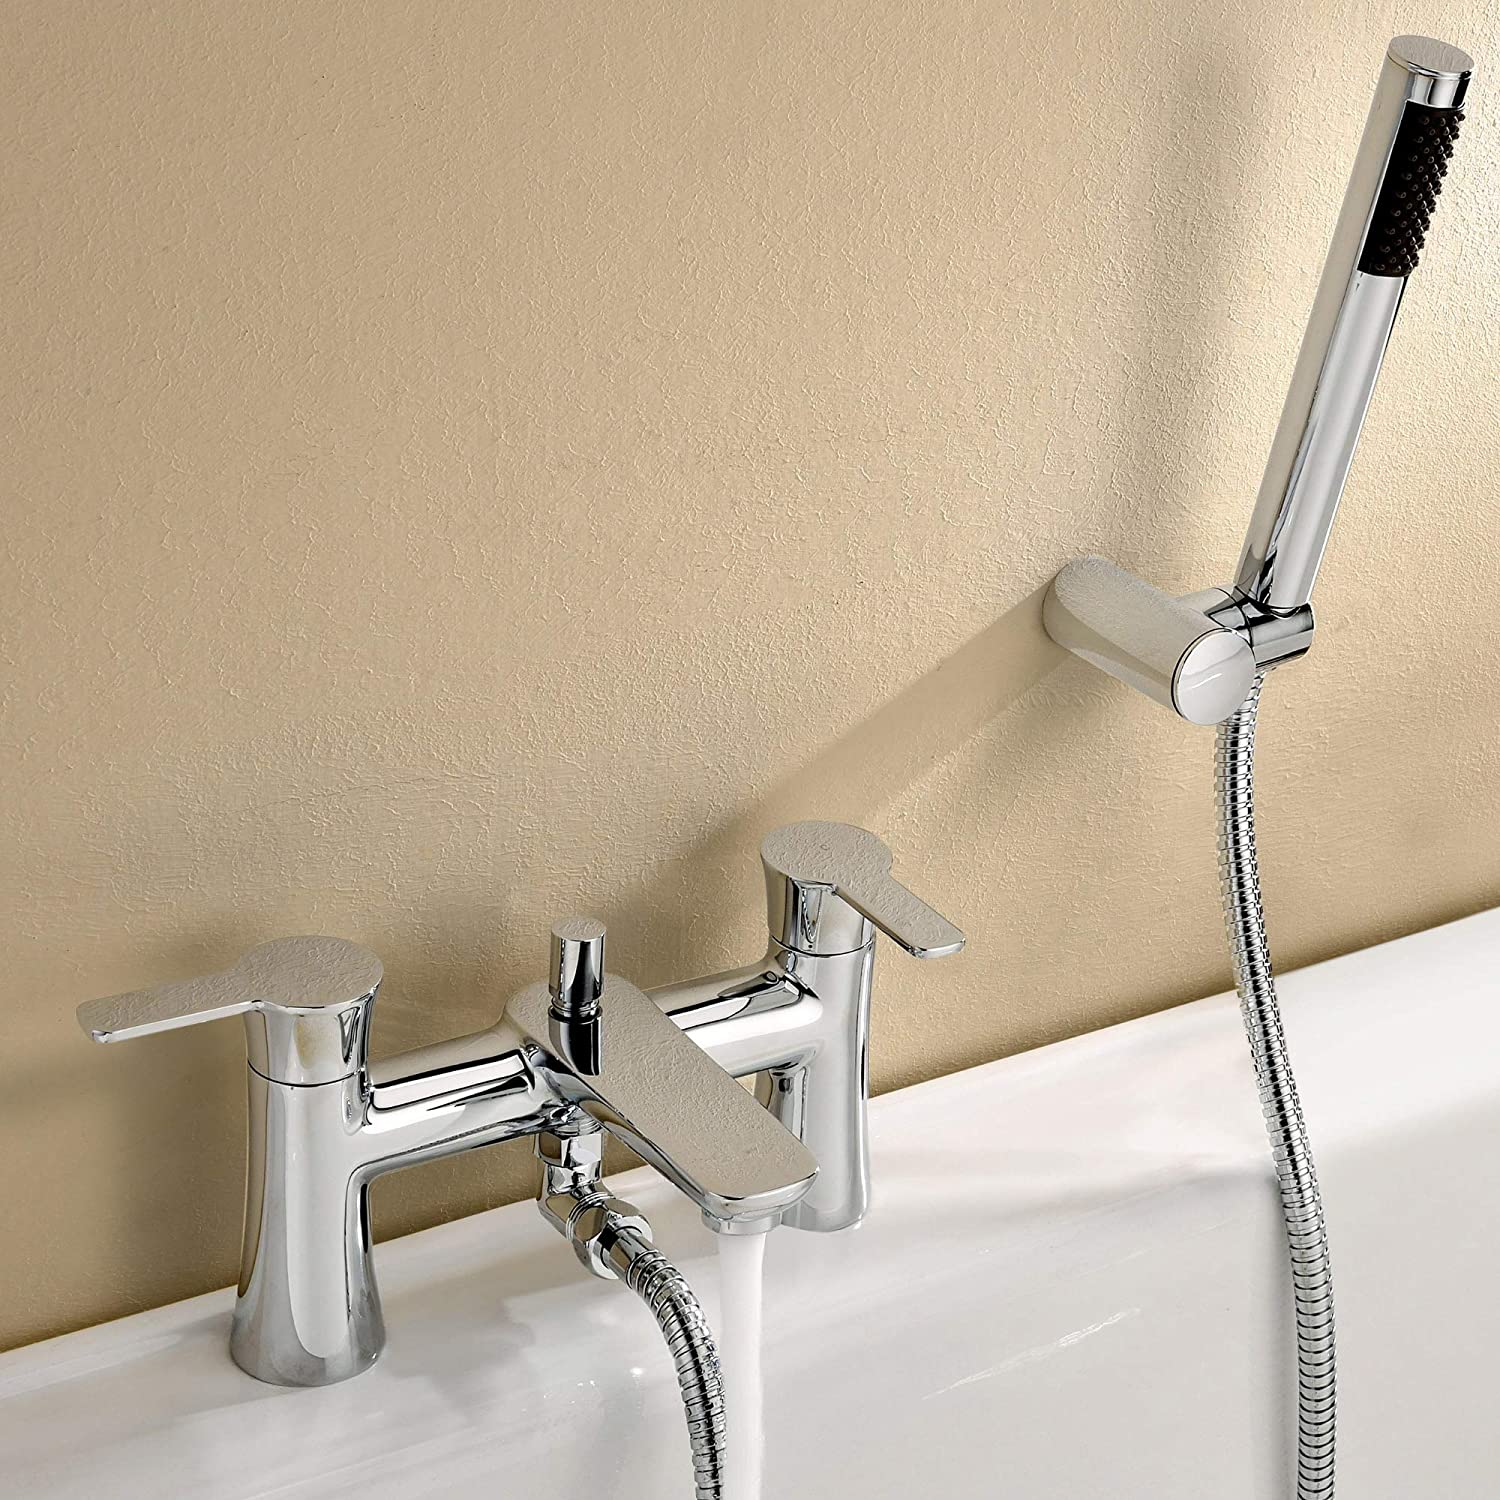 JTF Mega Discount Warehouse Contemporary Shower Mixer Tap Chrome